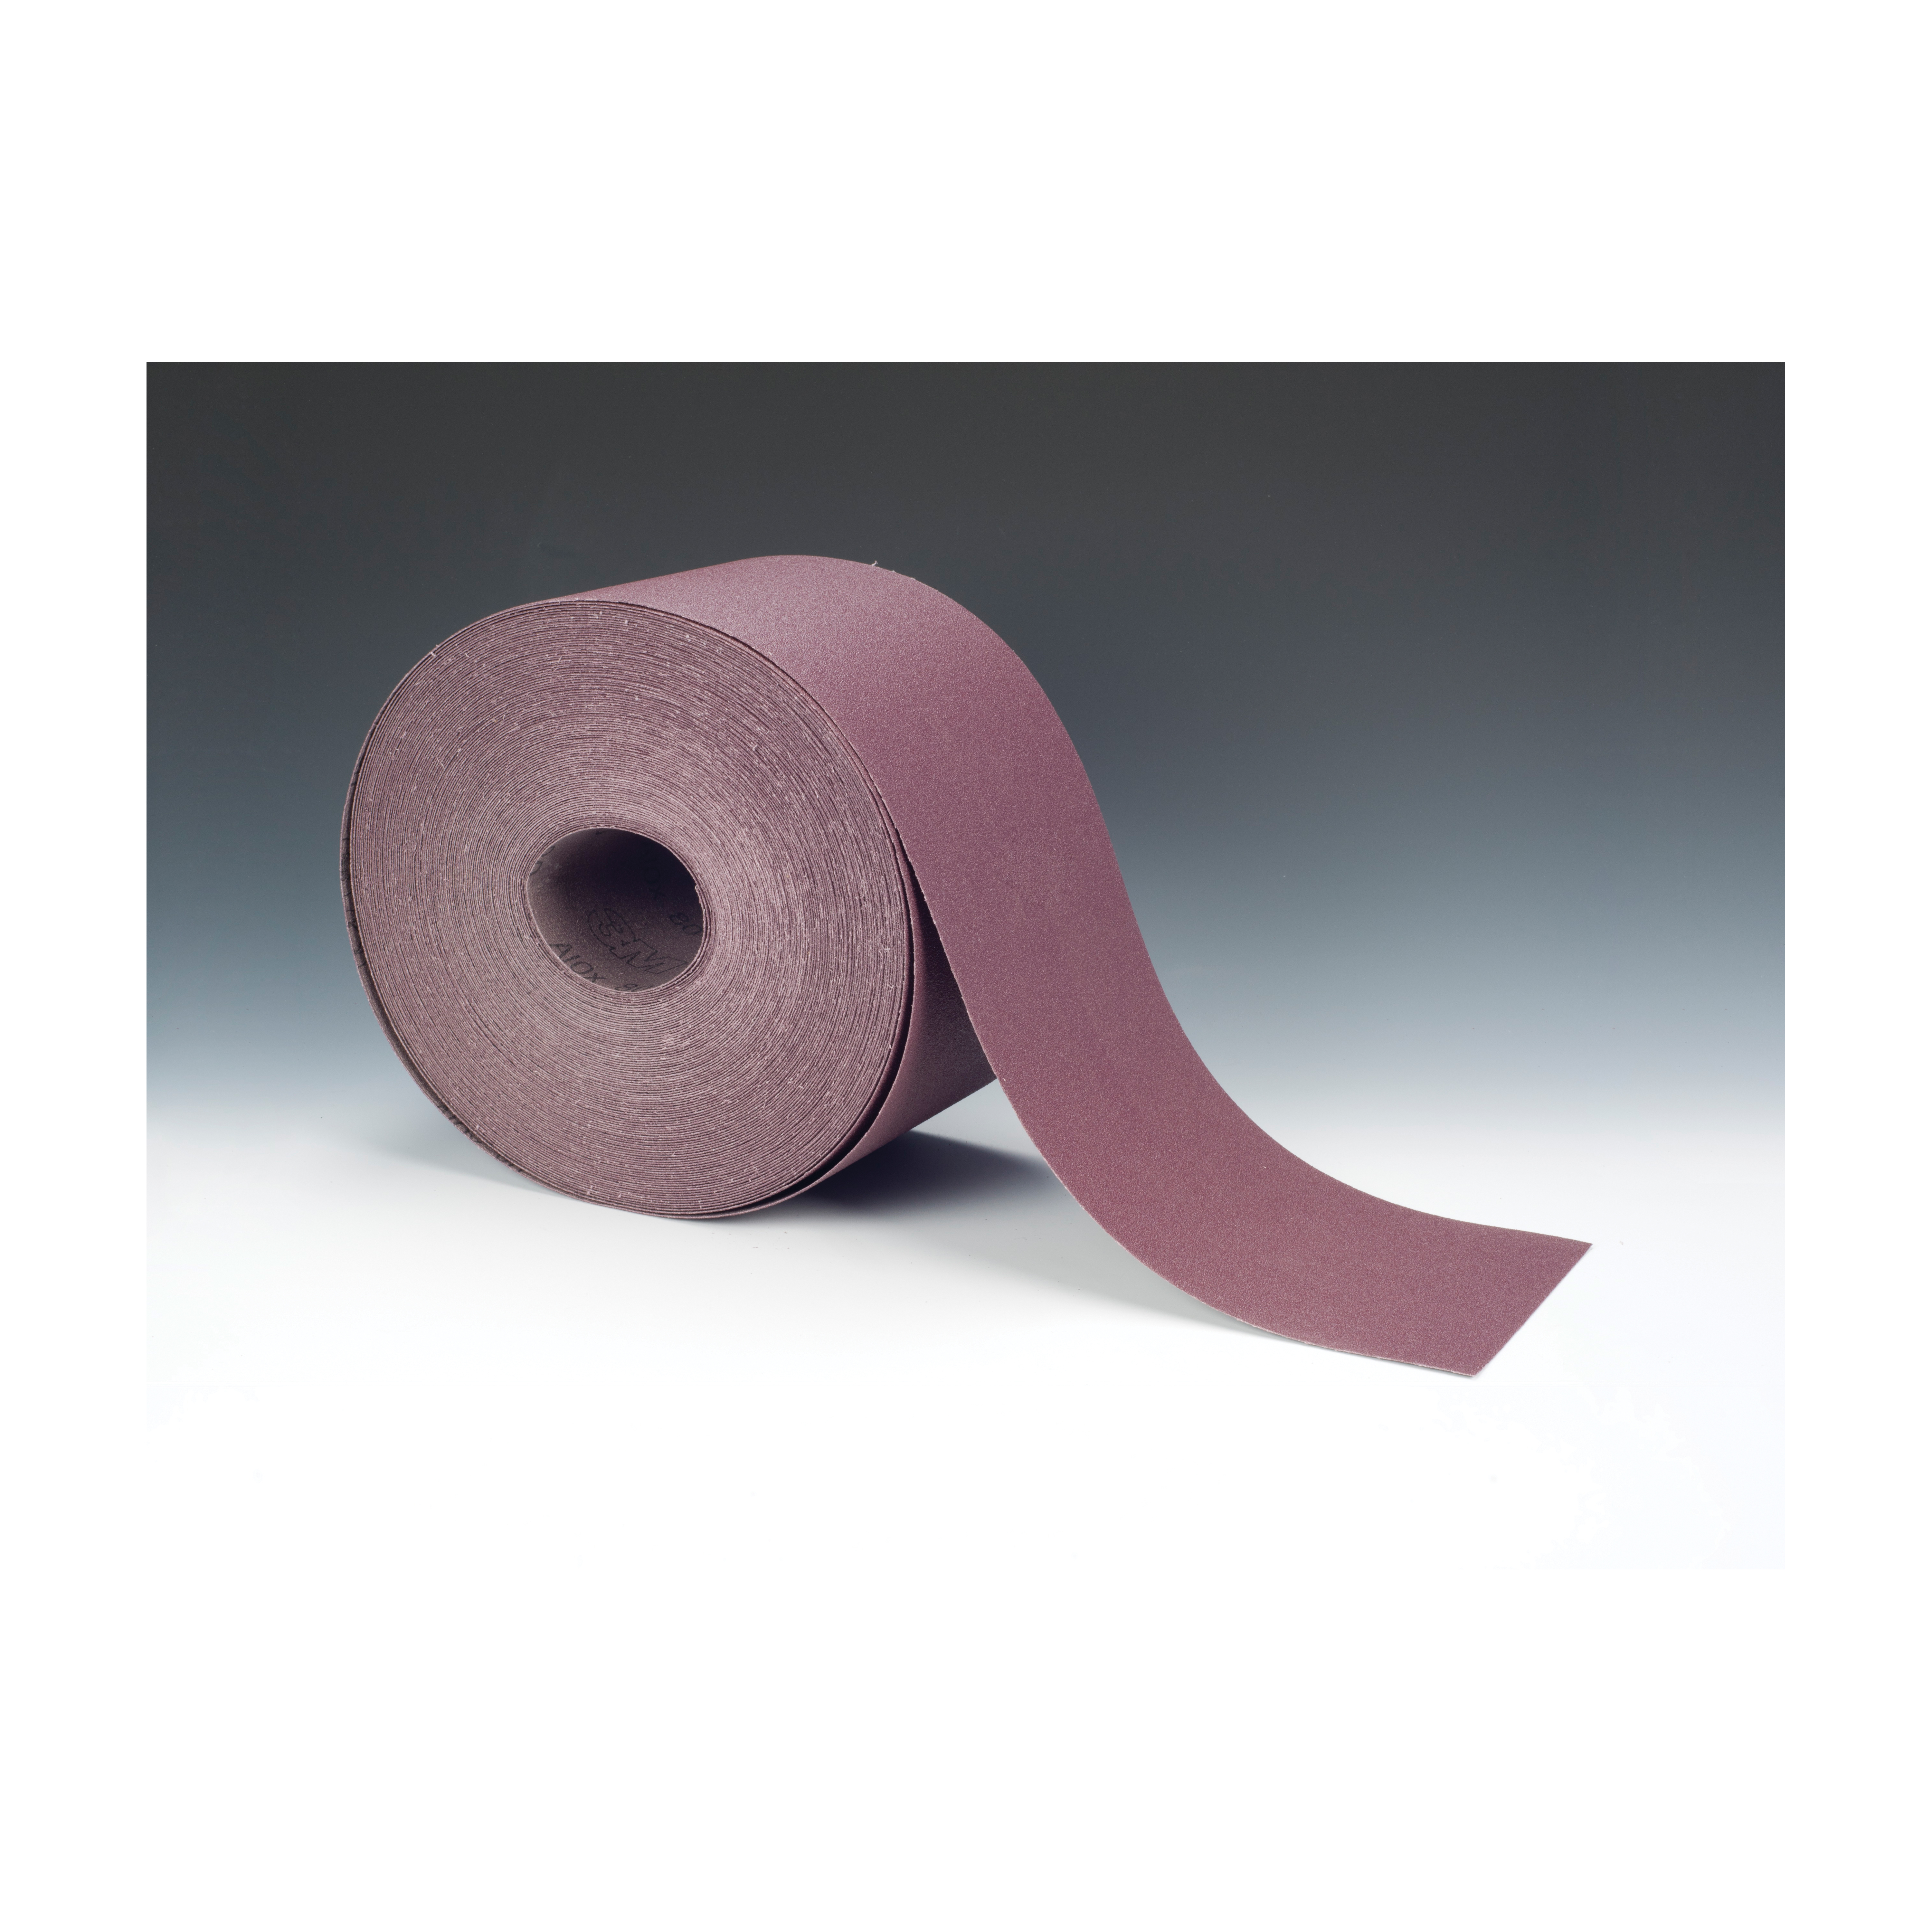 3M™ 051144-15173 Closed Coated Abrasive Roll, 50 yd L x 4 in W, 80 Grit, Medium Grade, Aluminum Oxide Abrasive, Cloth Backing